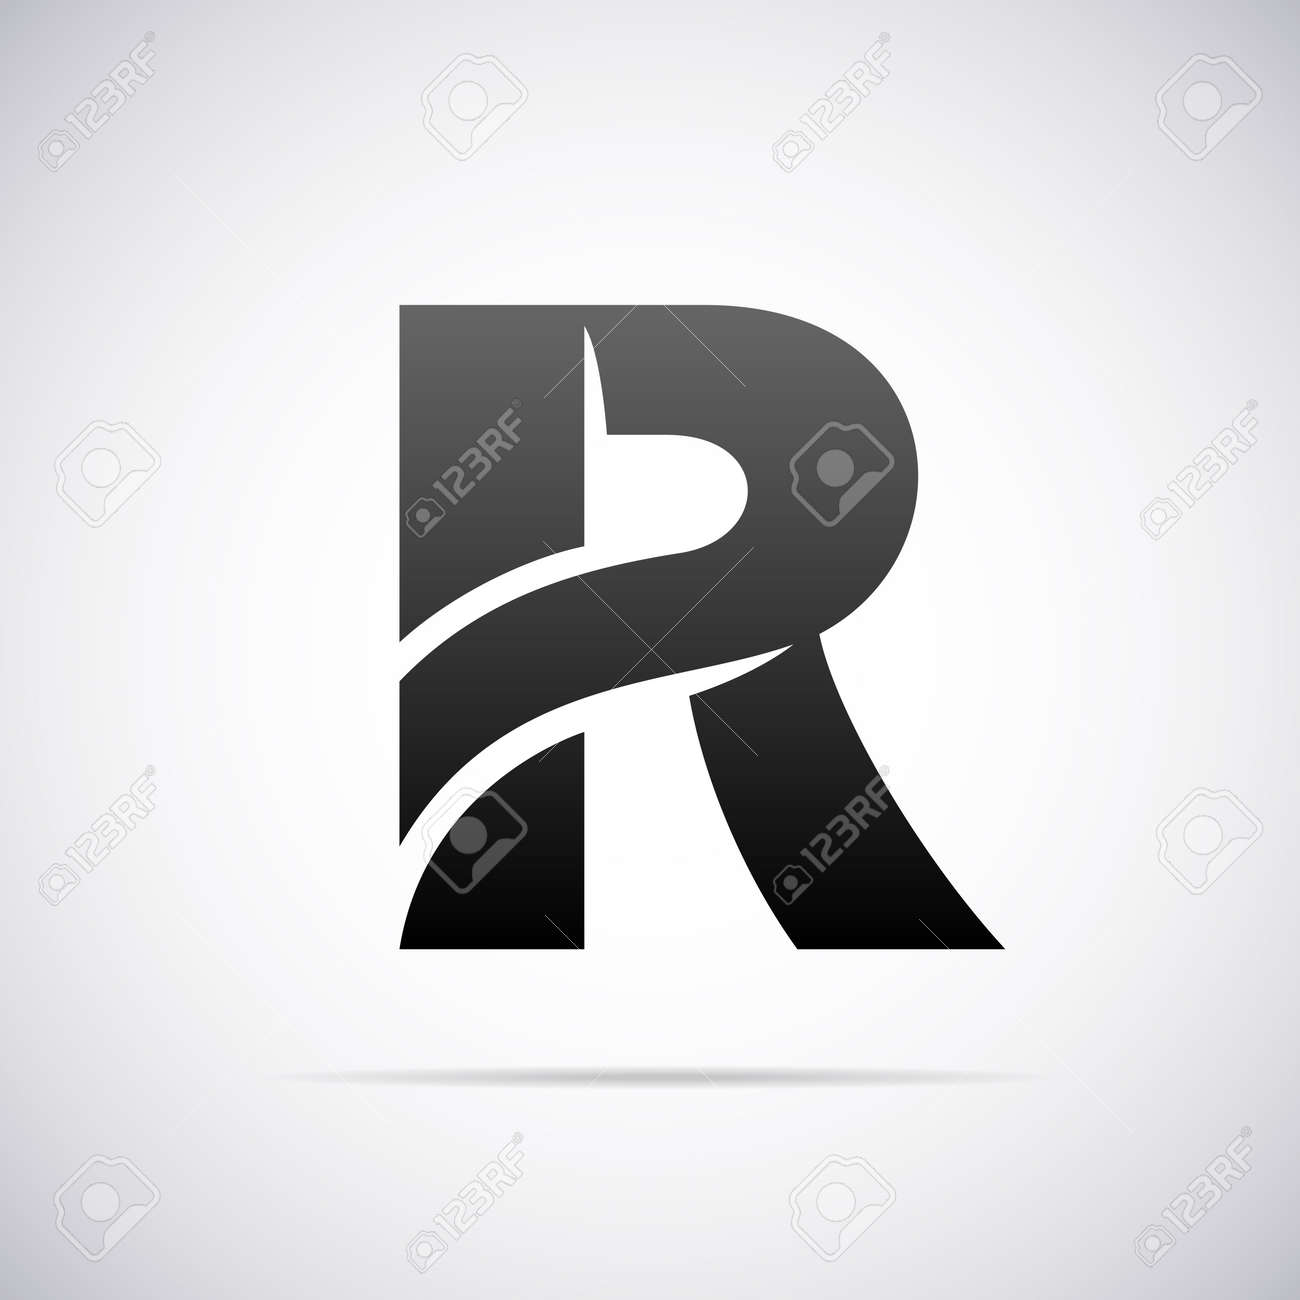 Letter r logo stock photos royalty free letter r logo images logo for letter r design template vector illustration illustration thecheapjerseys Images